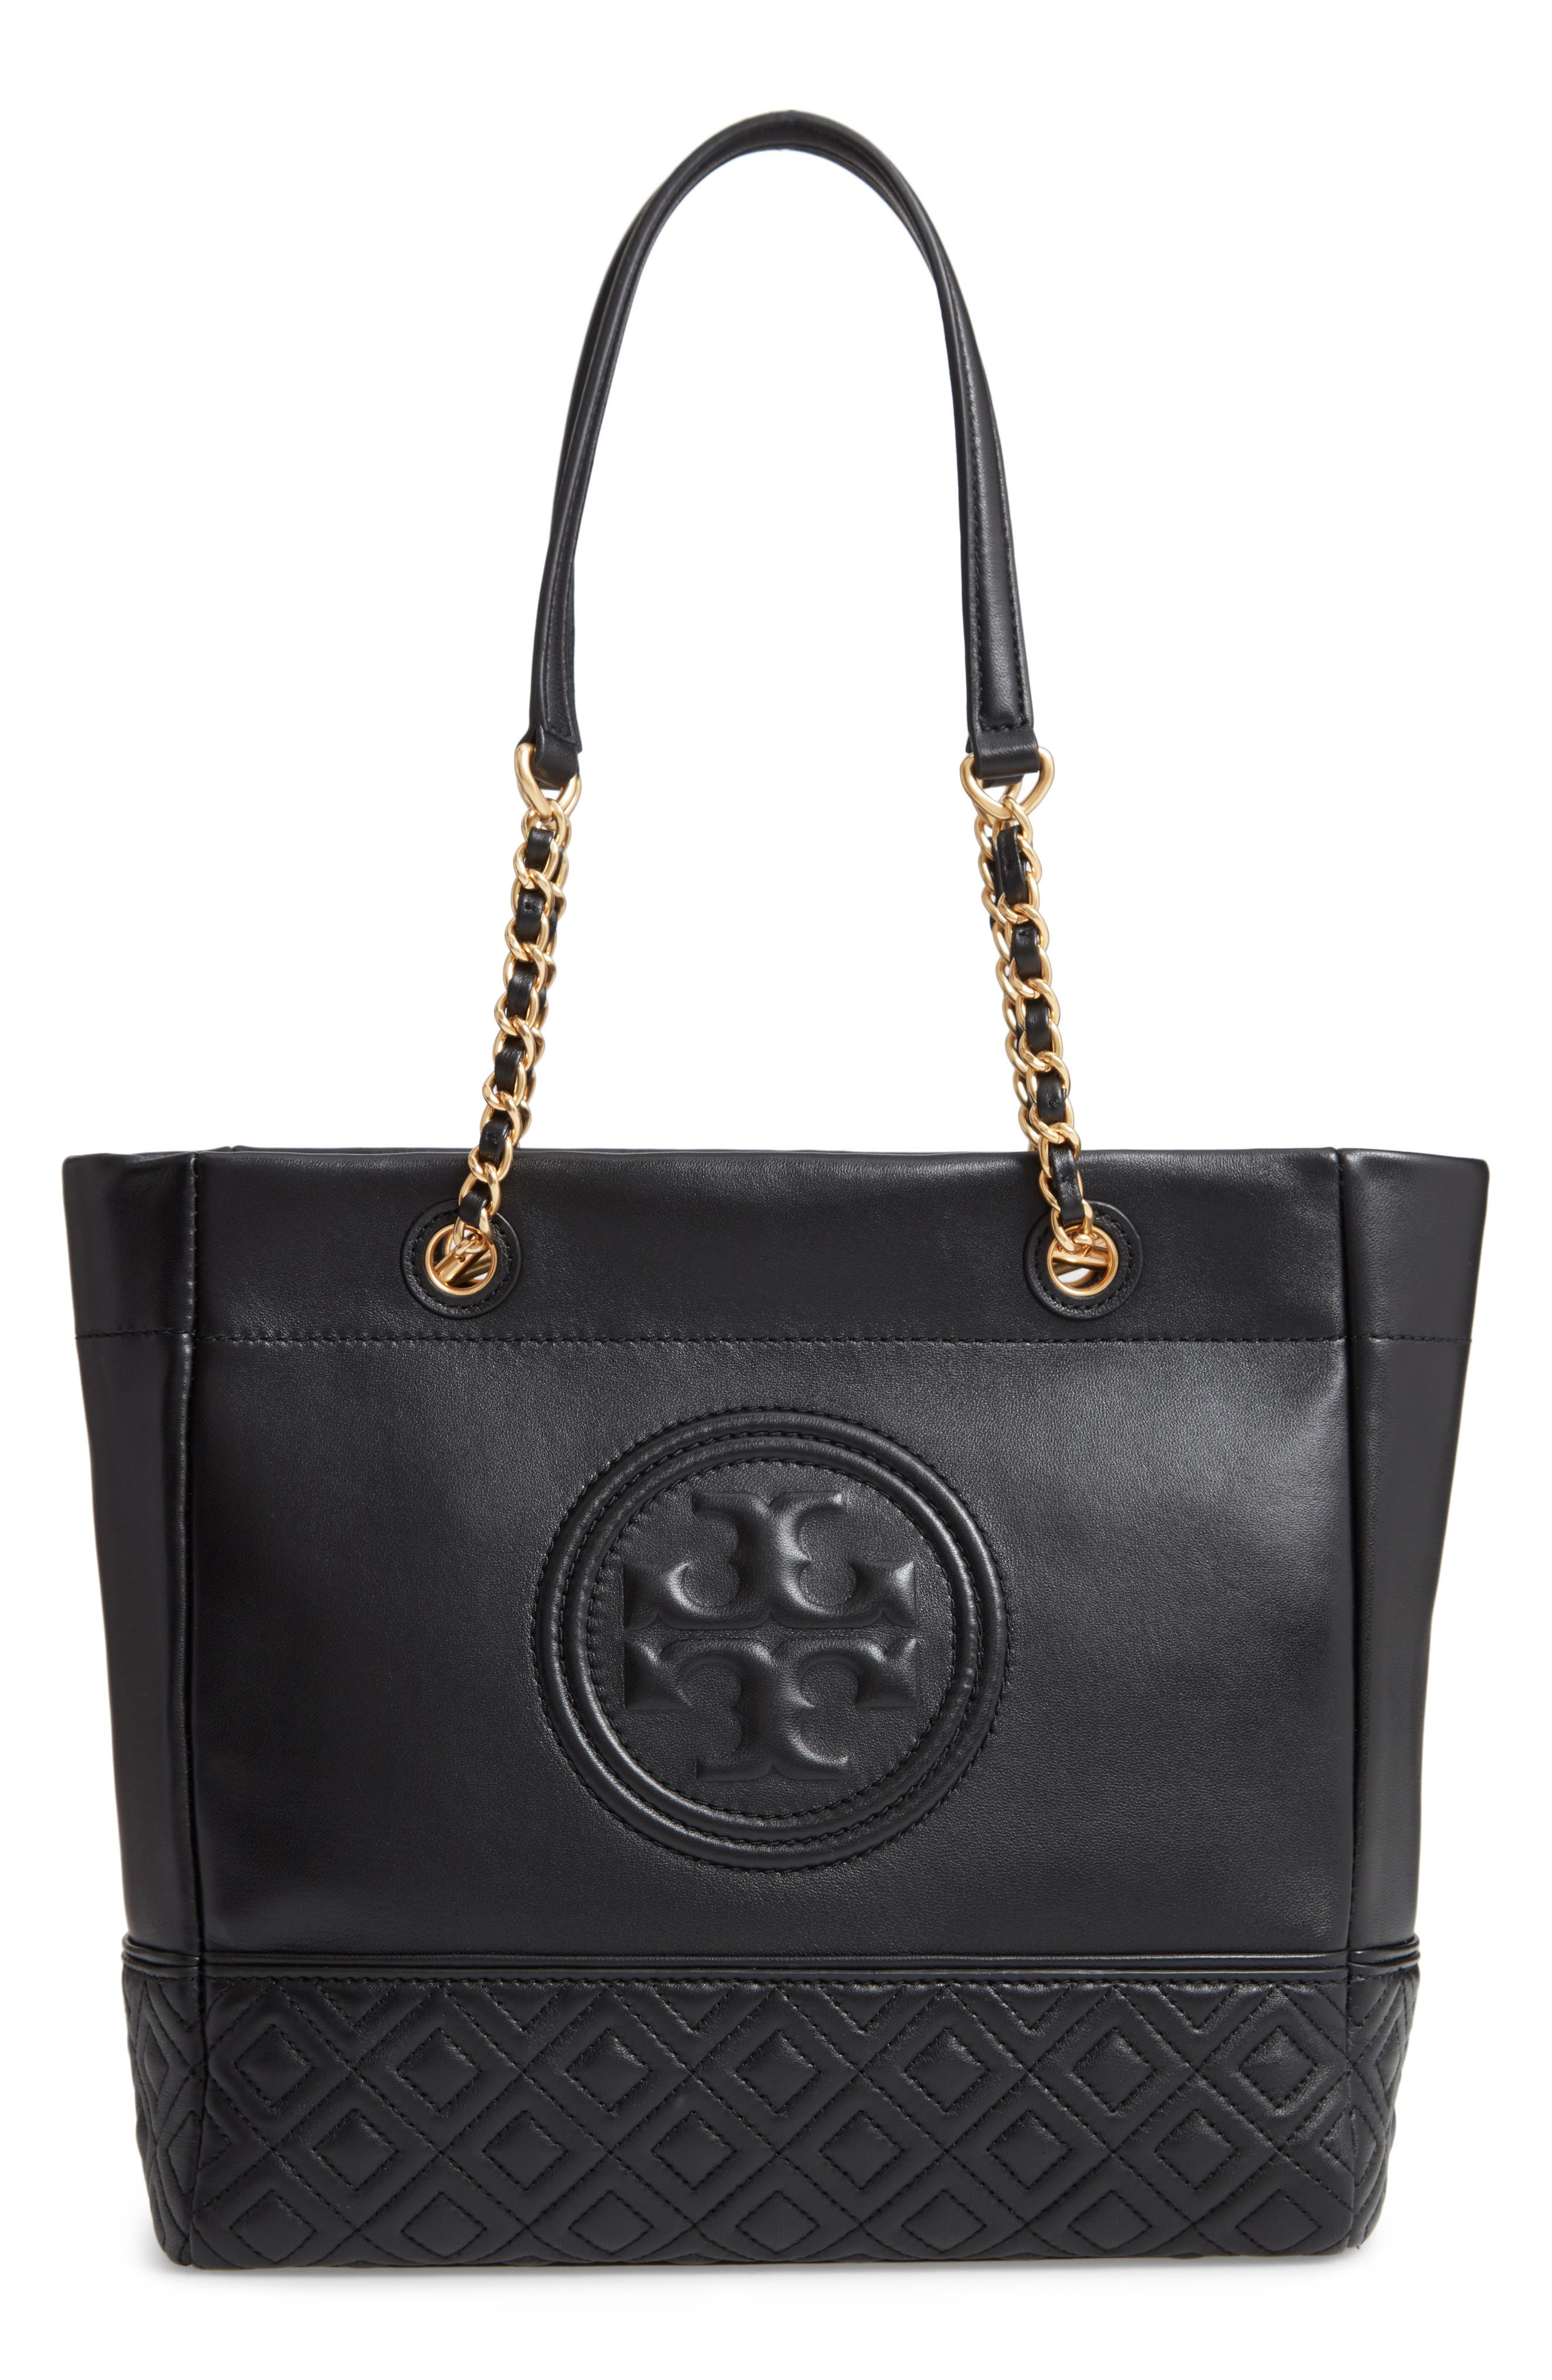 TORY BURCH, Fleming Leather Tote, Main thumbnail 1, color, BLACK